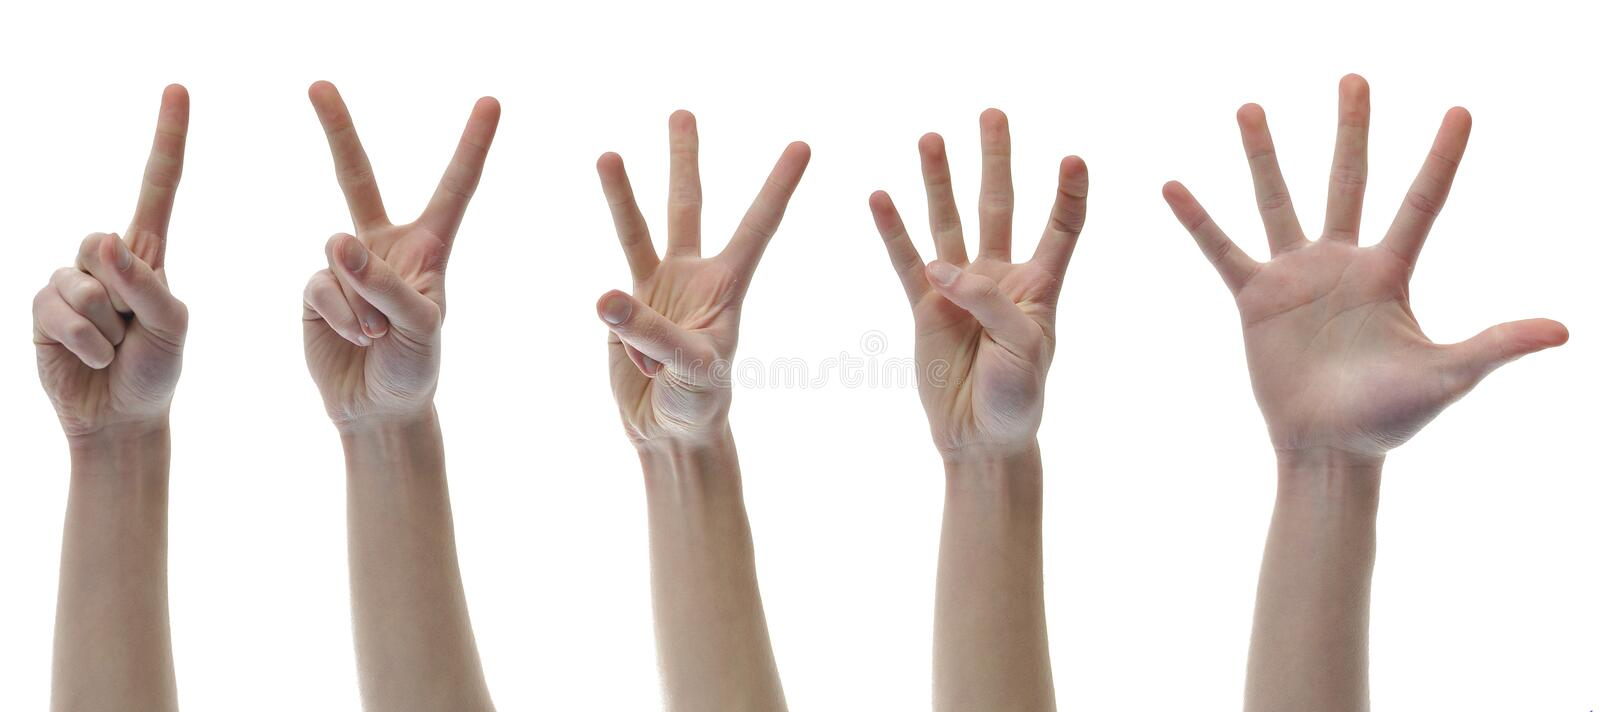 Download One Two Three Four Five Counting Finger Hands Stock Image - Image of communication, human: 12300483